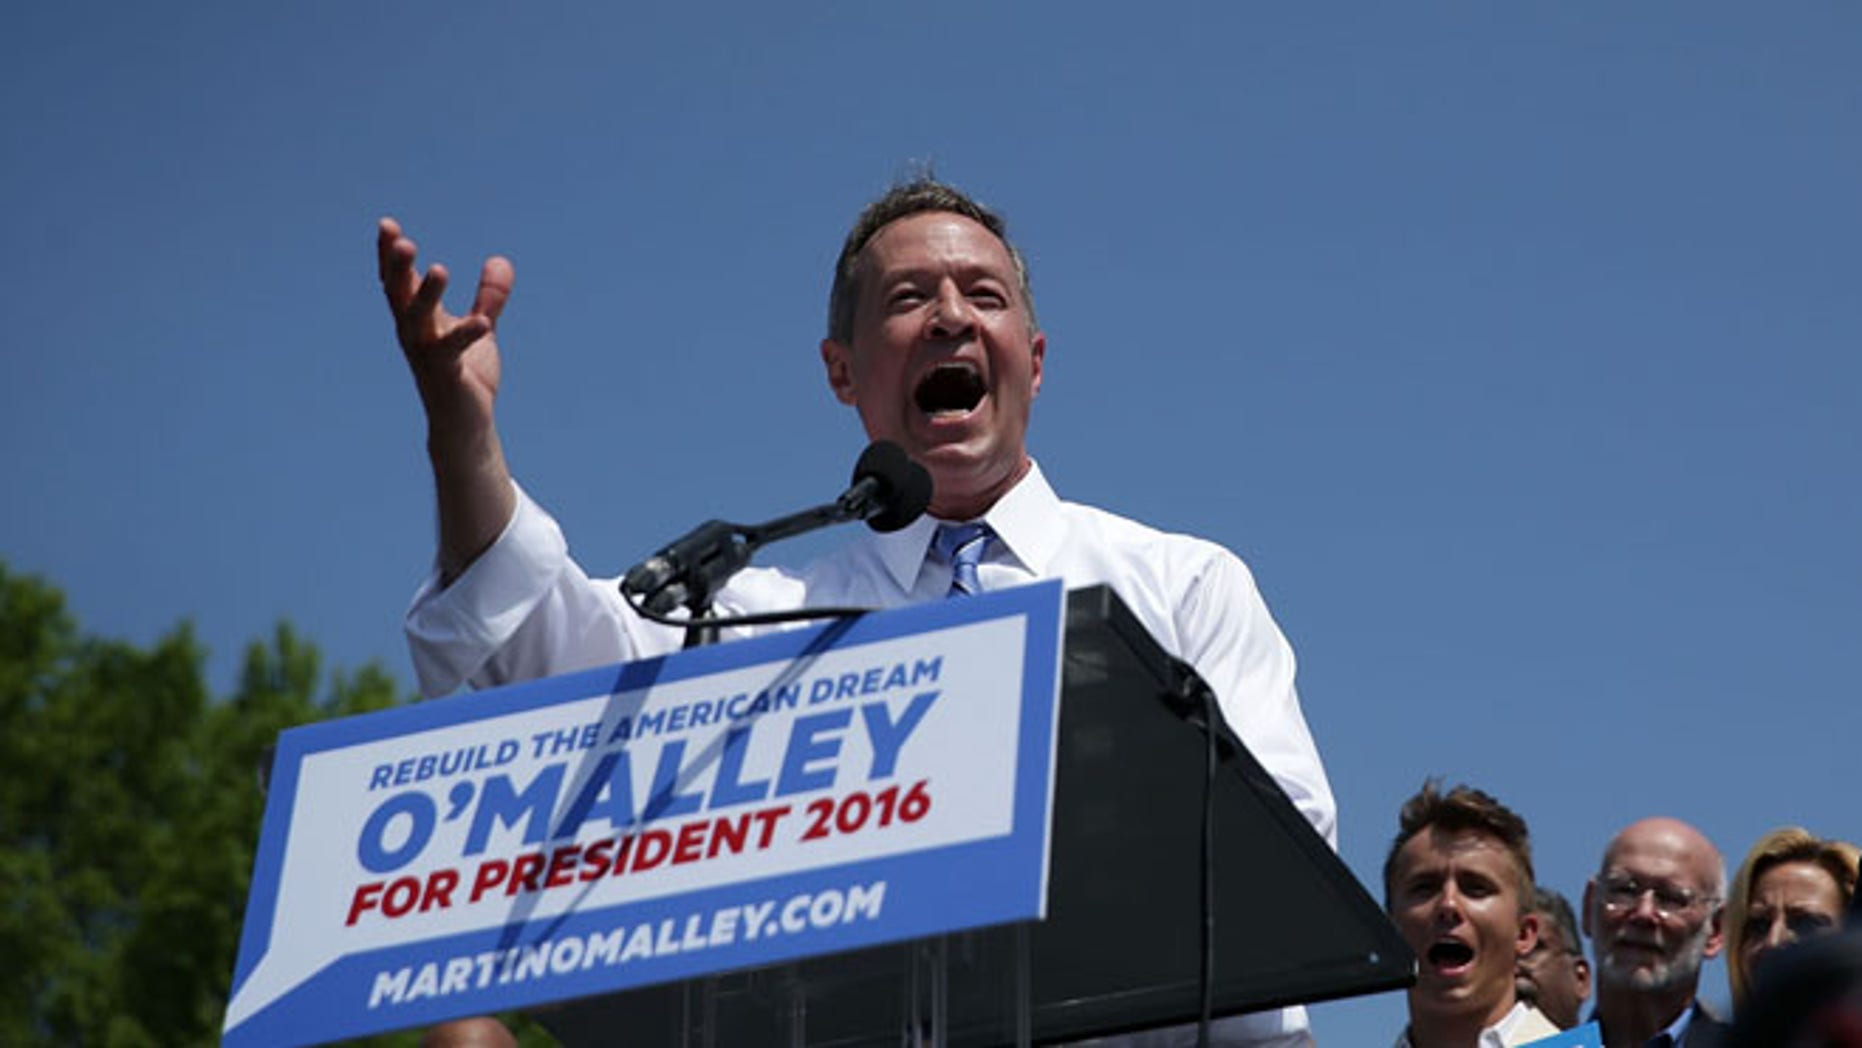 BALTIMORE, MD - MAY 30:  Former Maryland Gov. Martin O'Malley speaks as his wife Katie listens during an event to announce his candidacy for a presidential campaign May 30, 2015 at Federal Hill Park in Baltimore, Maryland. O'Malley was the third Democrat, after former U.S. Secretary of State Hillary Clinton and Sen. Bernie Sanders (I-VT), to throw his hat in the ring for the Democratic nomination.  (Photo by Alex Wong/Getty Images)